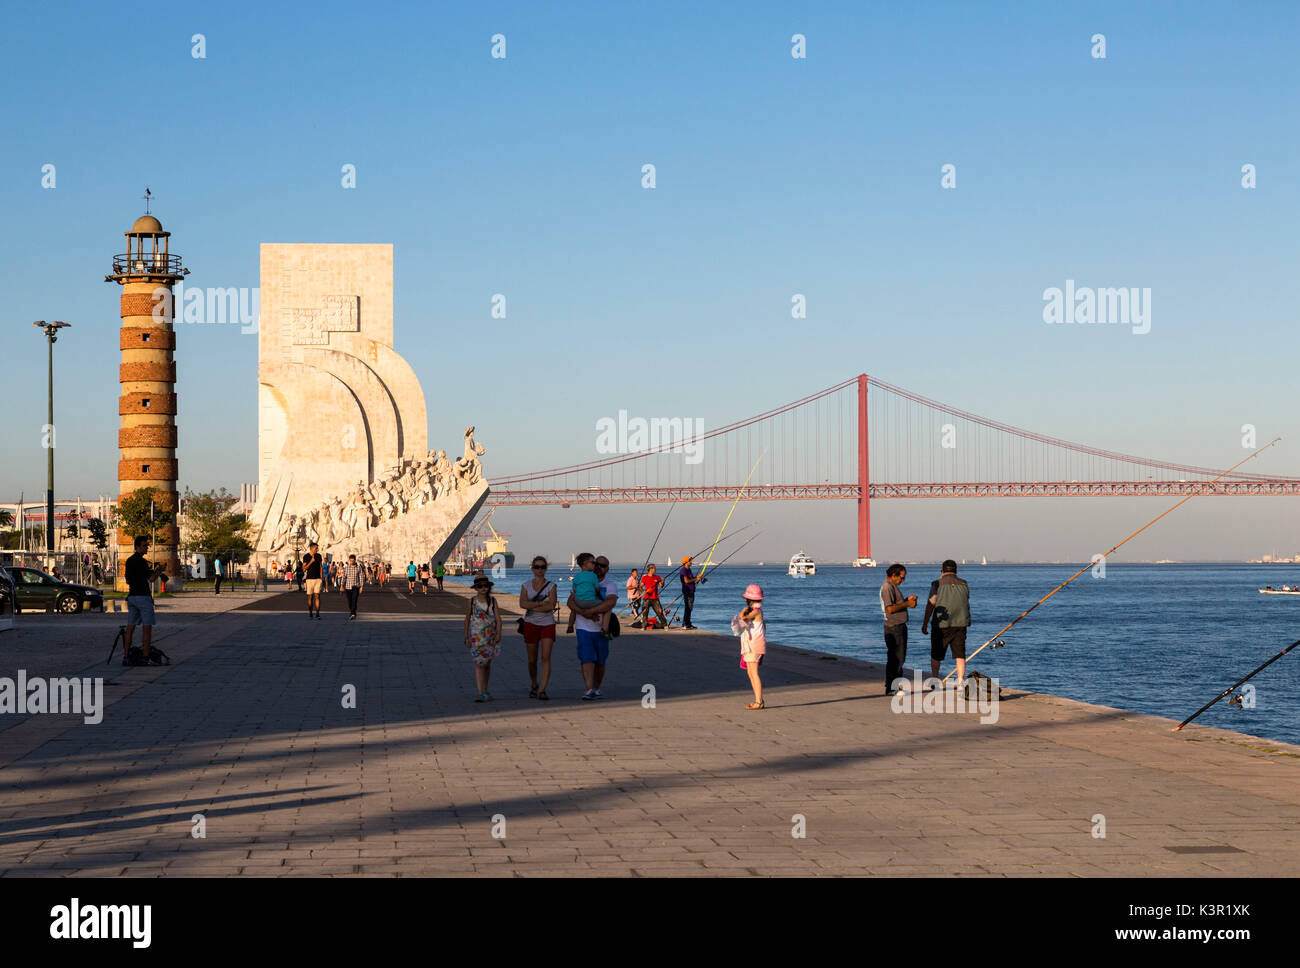 Padrão dos Descobrimentos also known as Monument to the Discoveries on bank of Tagus River Belem Lisbon Portugal Europe - Stock Image